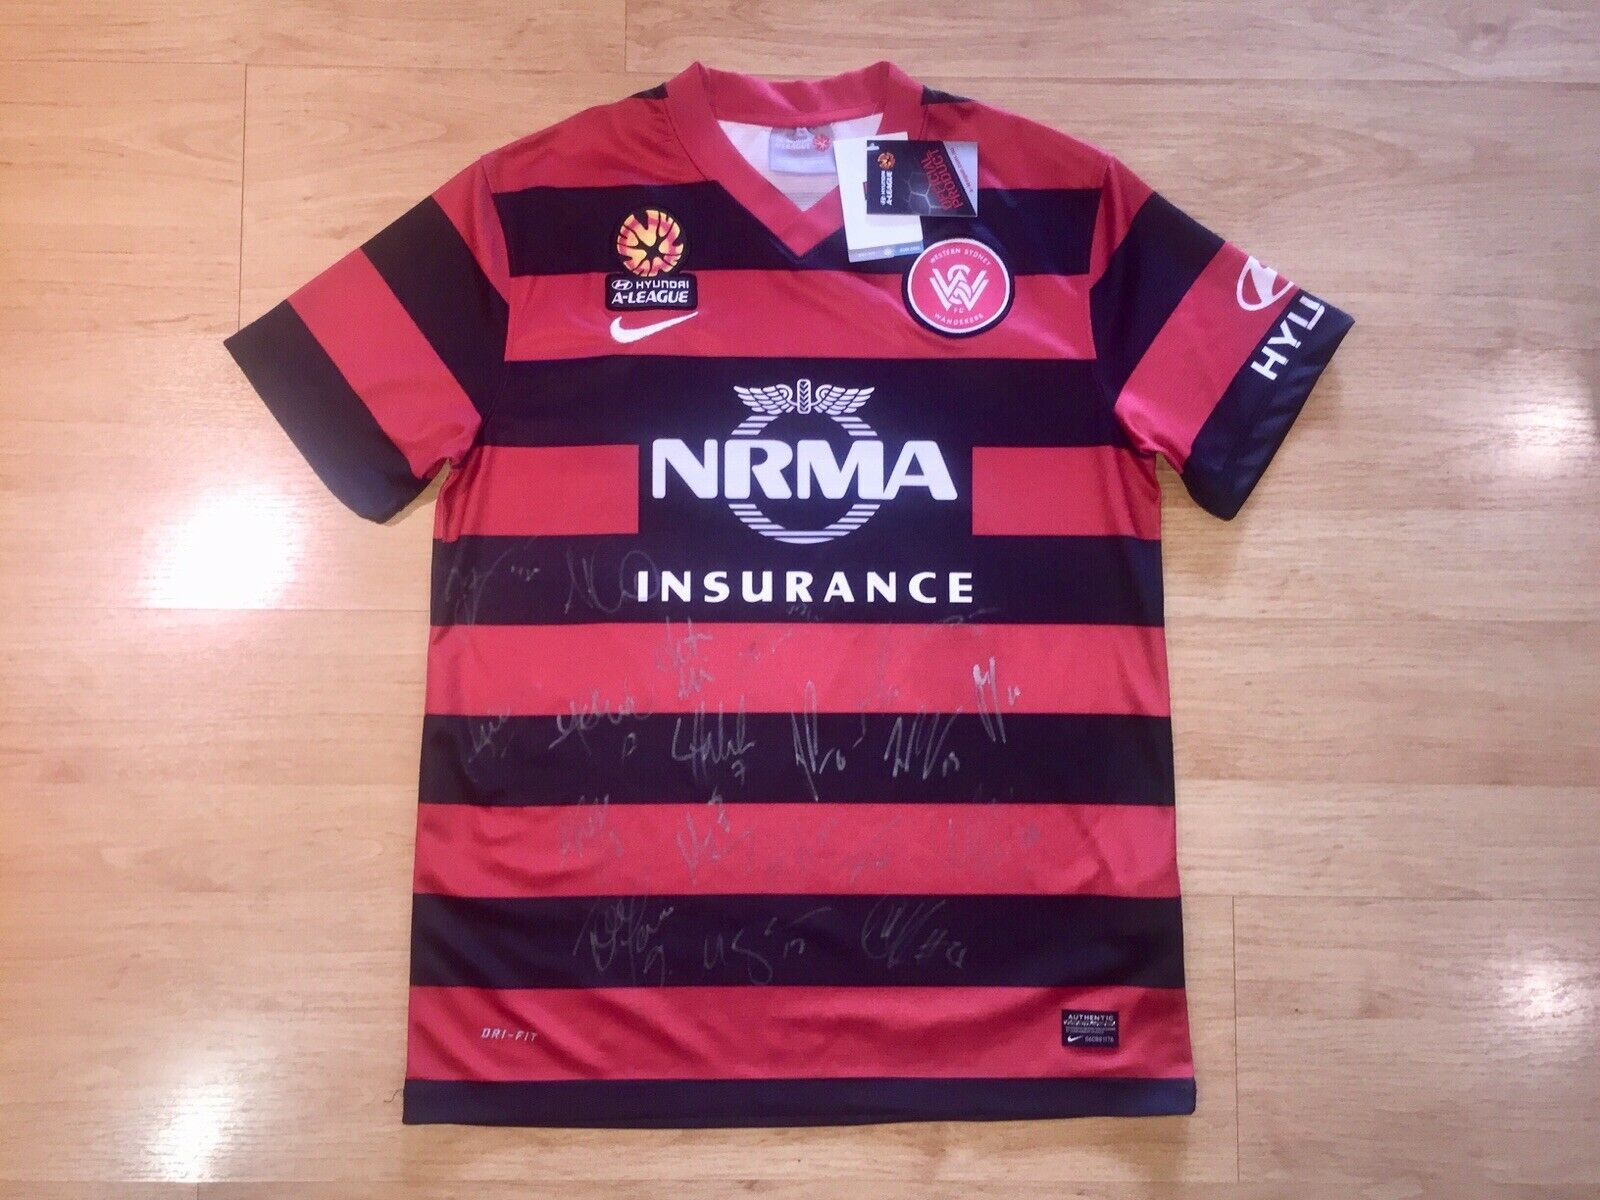 WESTERN SYDNEY WeERERS 2013204 SIGNED 20 SIGNATURES HOME HOME HOME SHIRT JERSEY MEDIUM 149